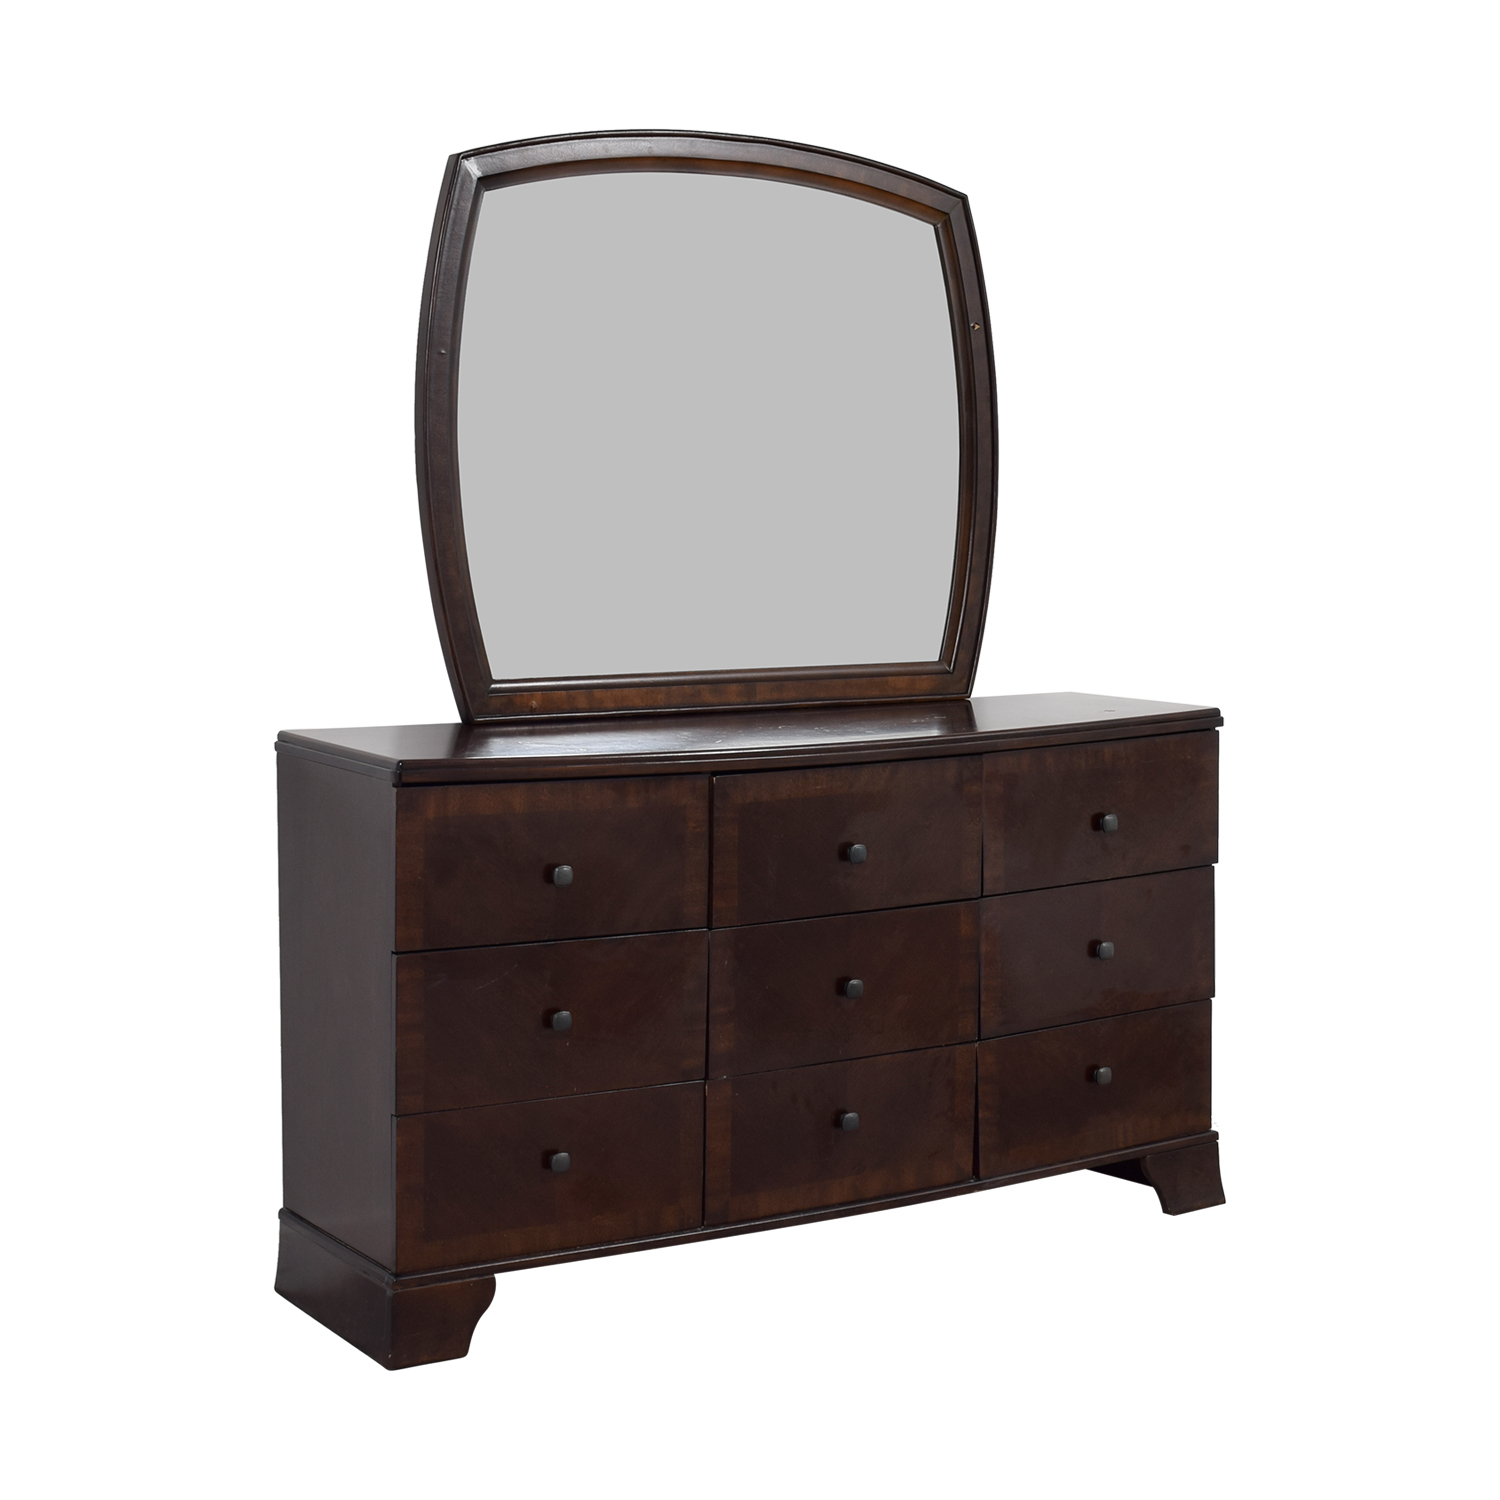 Ashley Furniture Ashley Furniture Six-Drawer Dresser with Mirror price